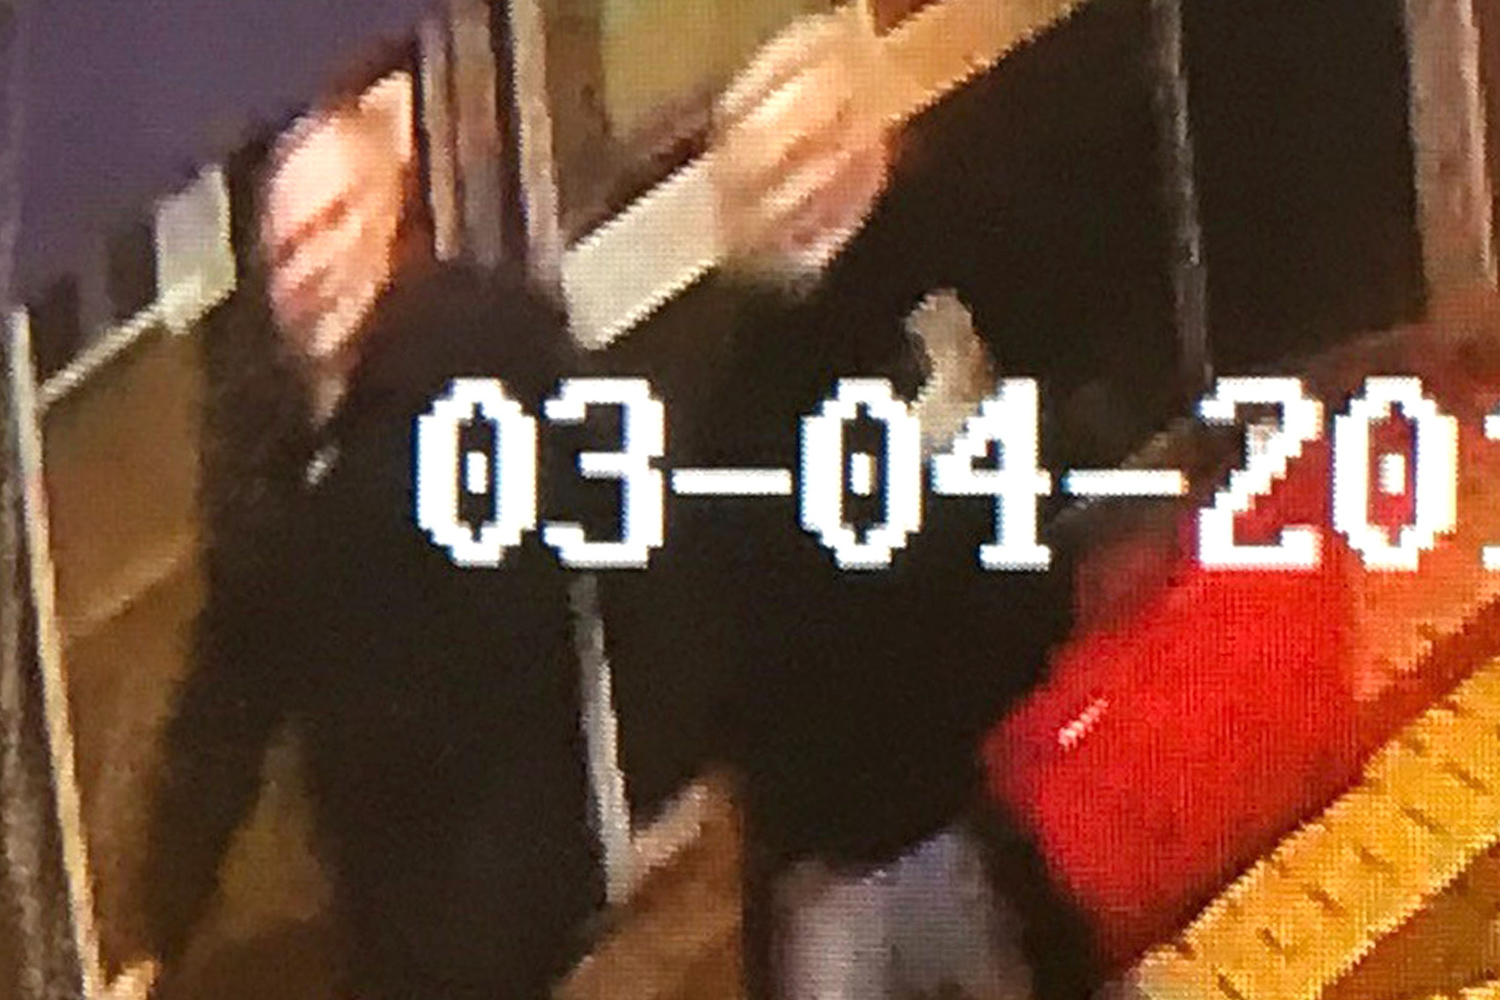 Russian spy Sergei Skripal latest police investigating poisoning seize footage of man and